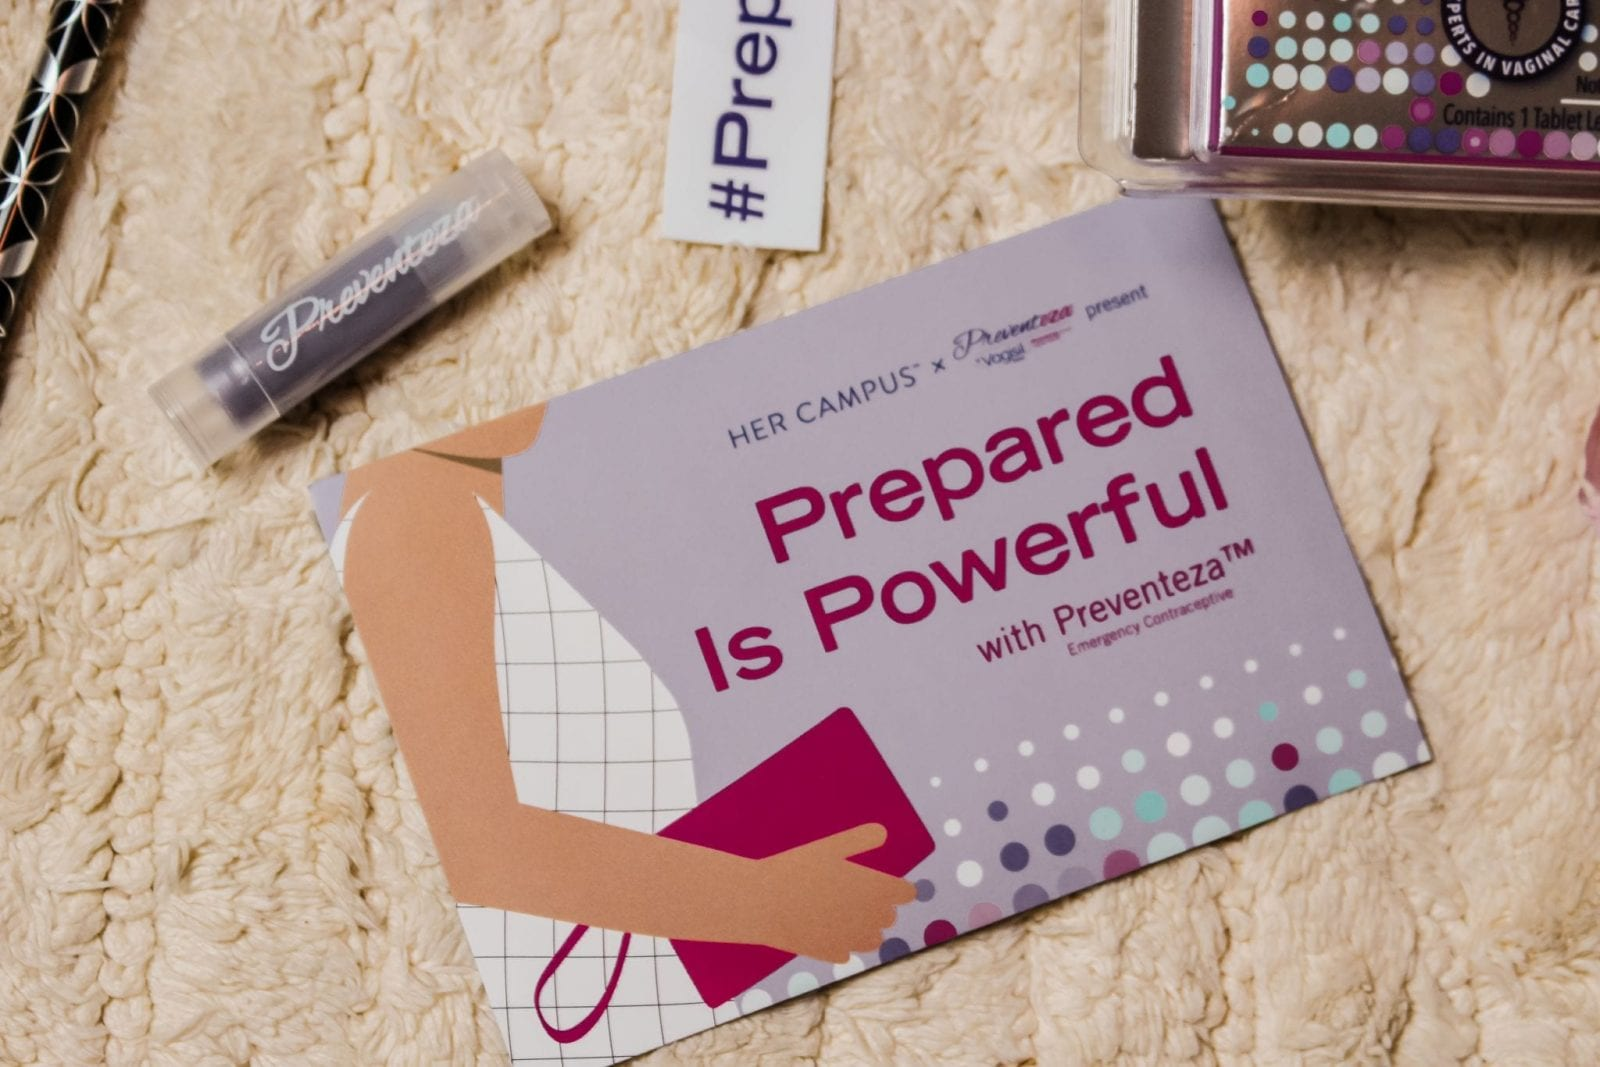 This is a flat lay shot of the new packaging and information from Being Prepared with Vagisil®'s emergency contraceptive product.